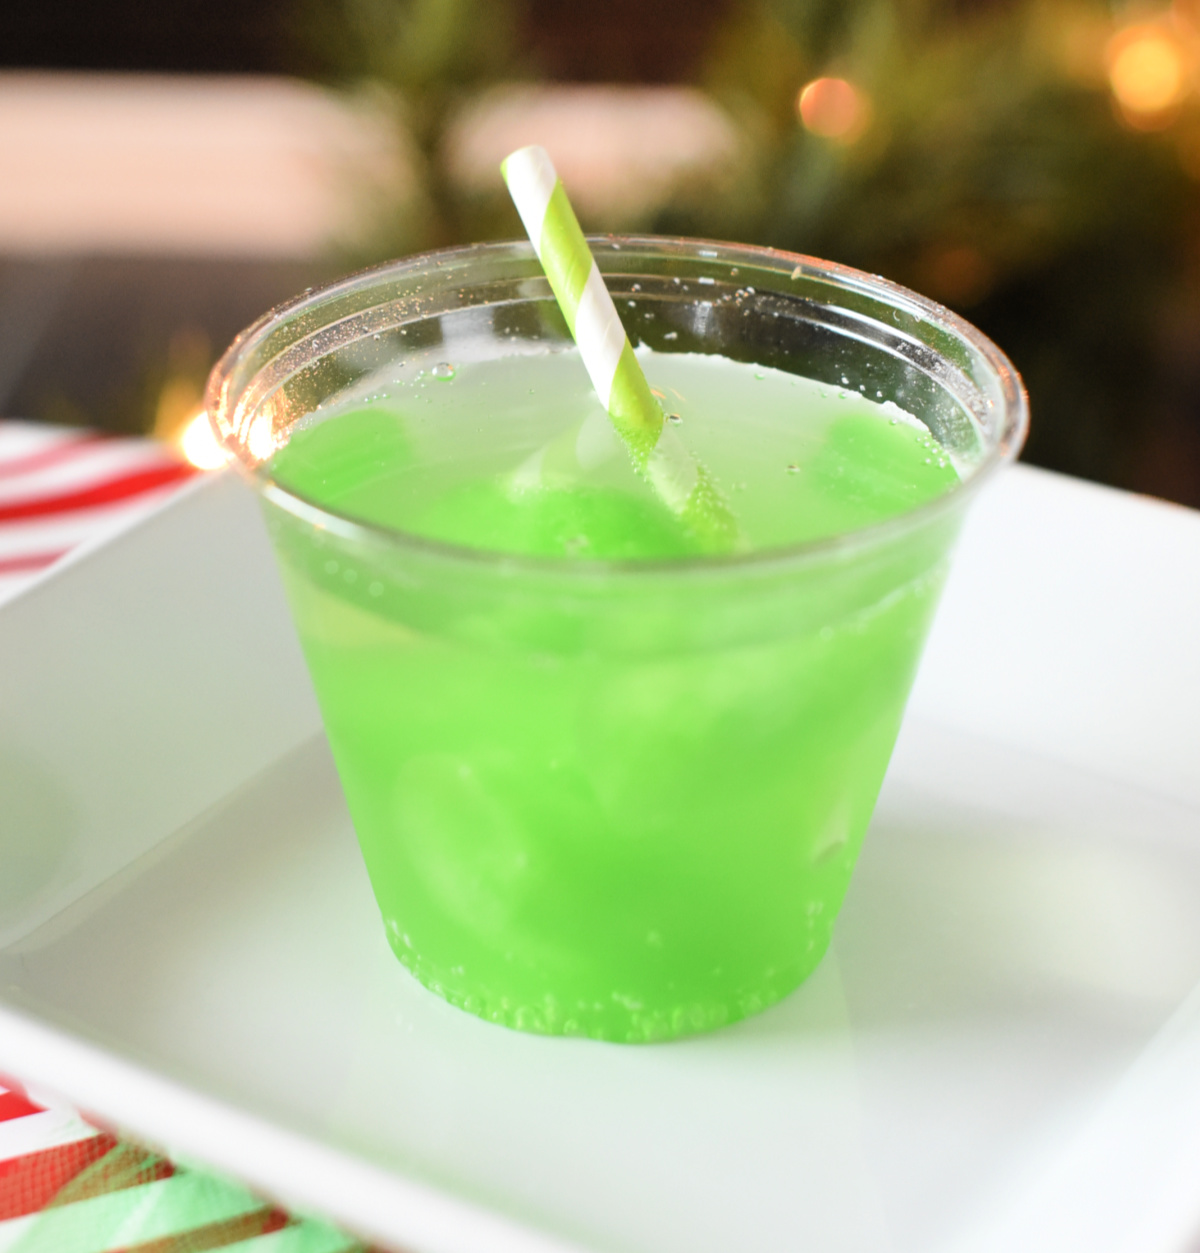 Grinch Greenie Drink